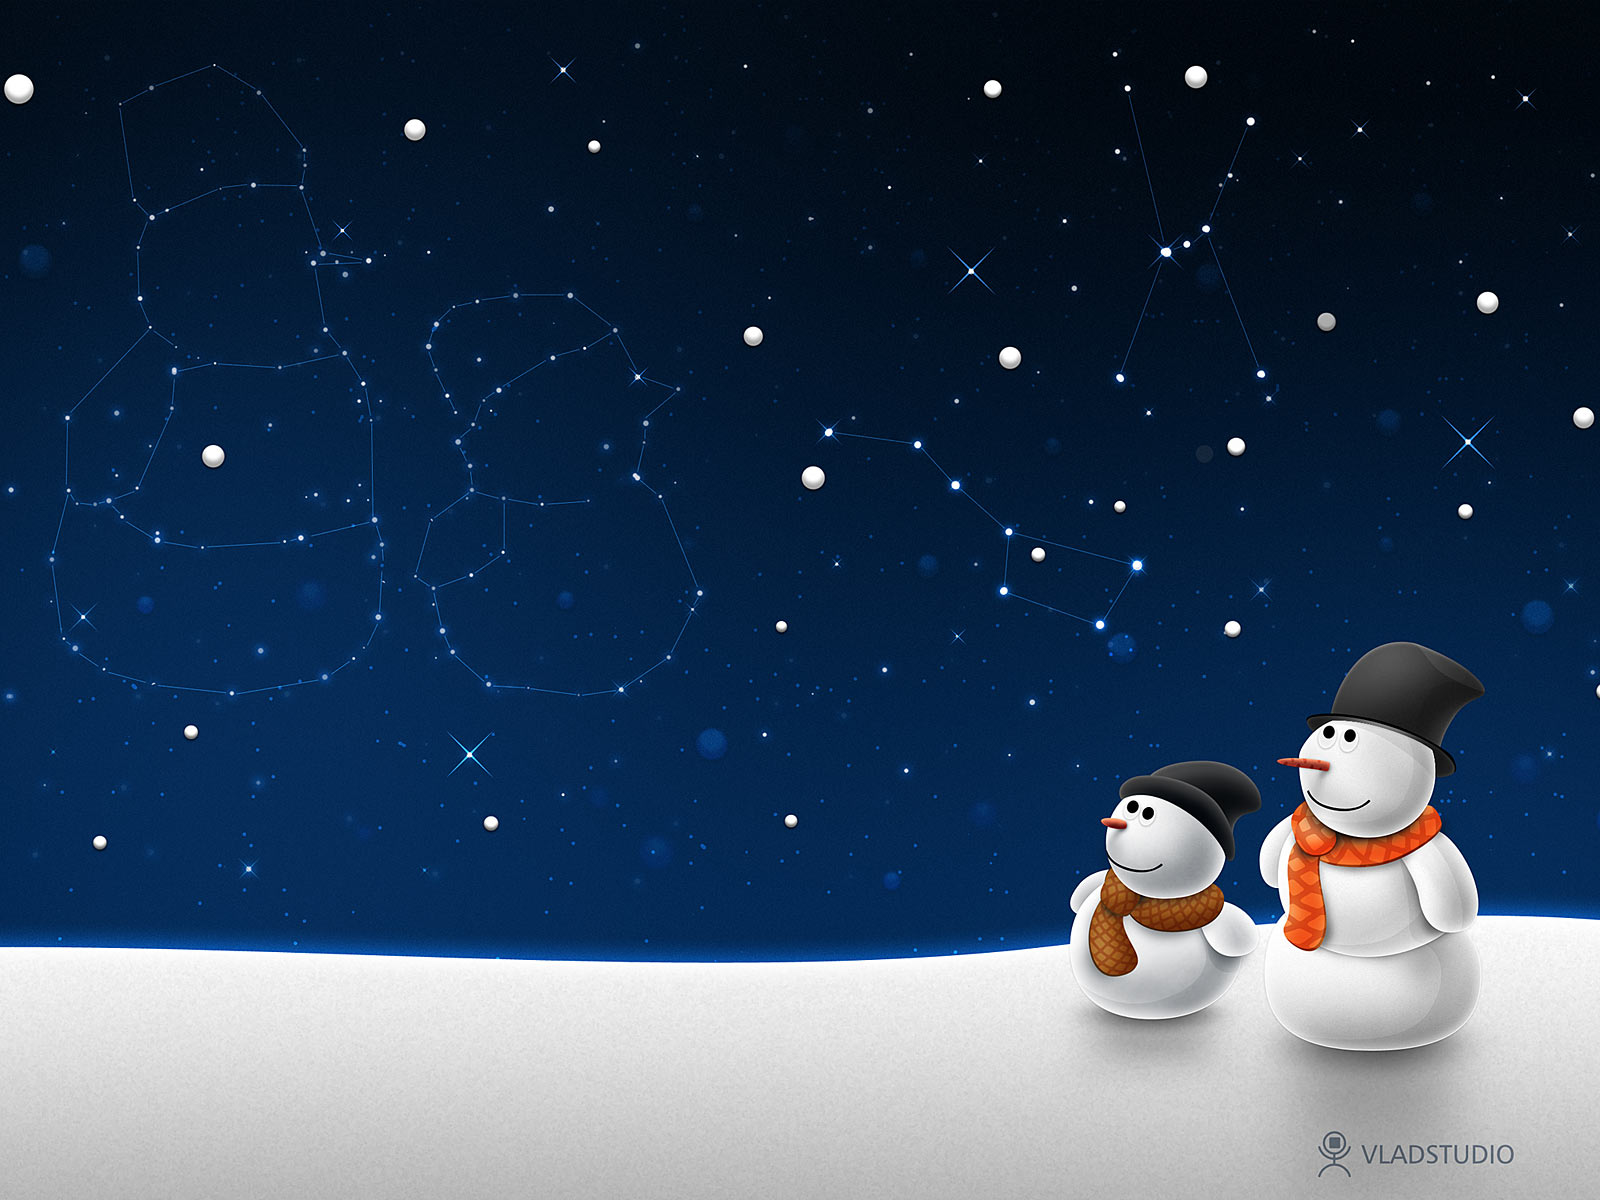 wallpapers and screensavers. download our free christmas wallpapers .